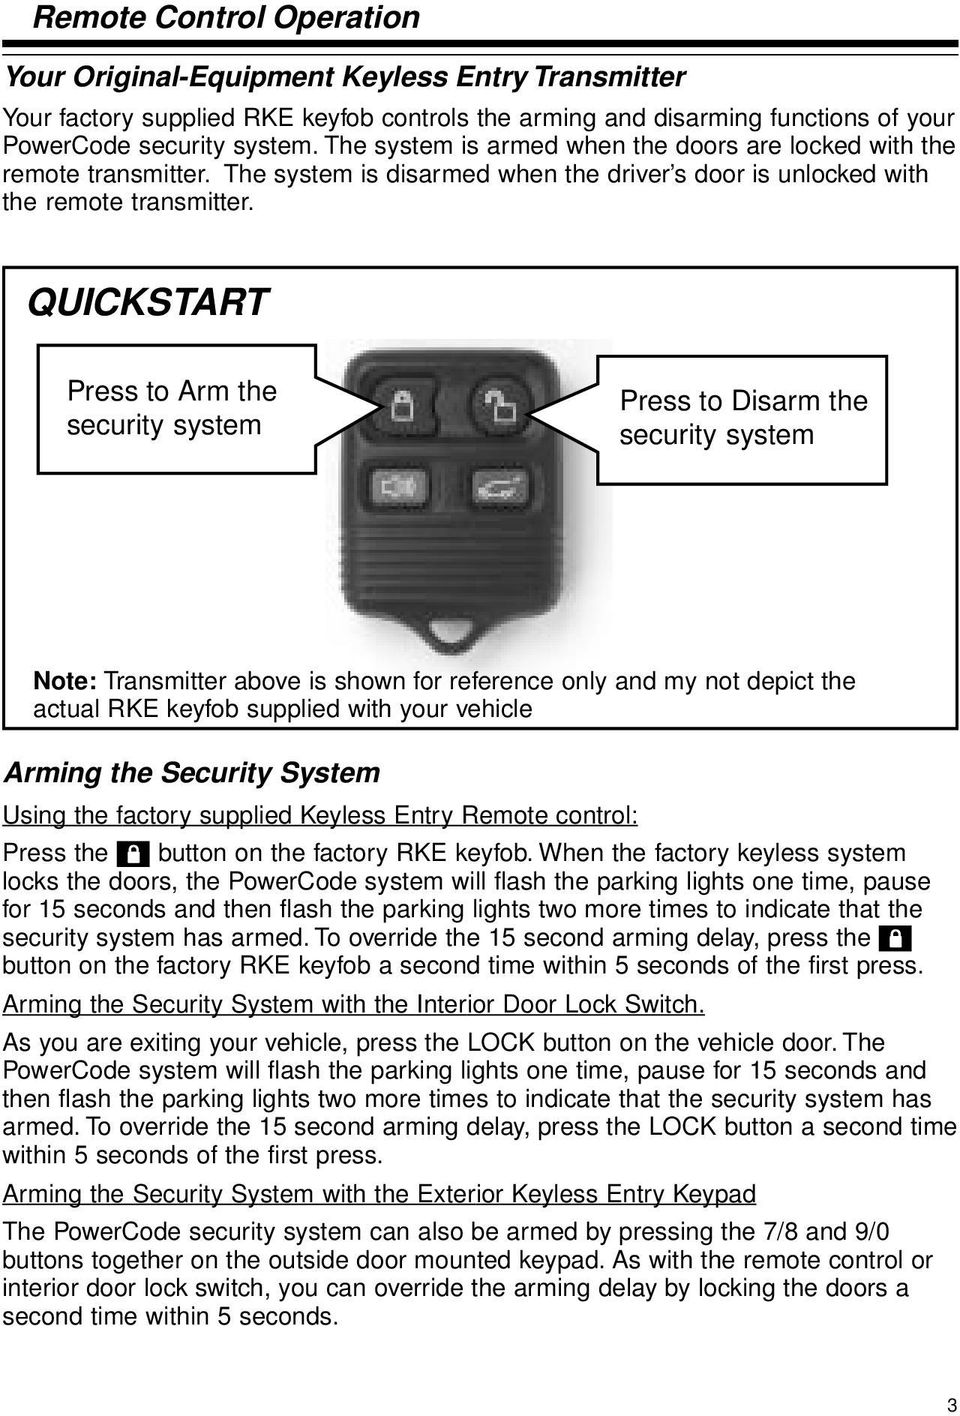 QUICKSTART Press to Arm the security system Press to Disarm the security system Note: Transmitter above is shown for reference only and my not depict the actual RKE keyfob supplied with your vehicle